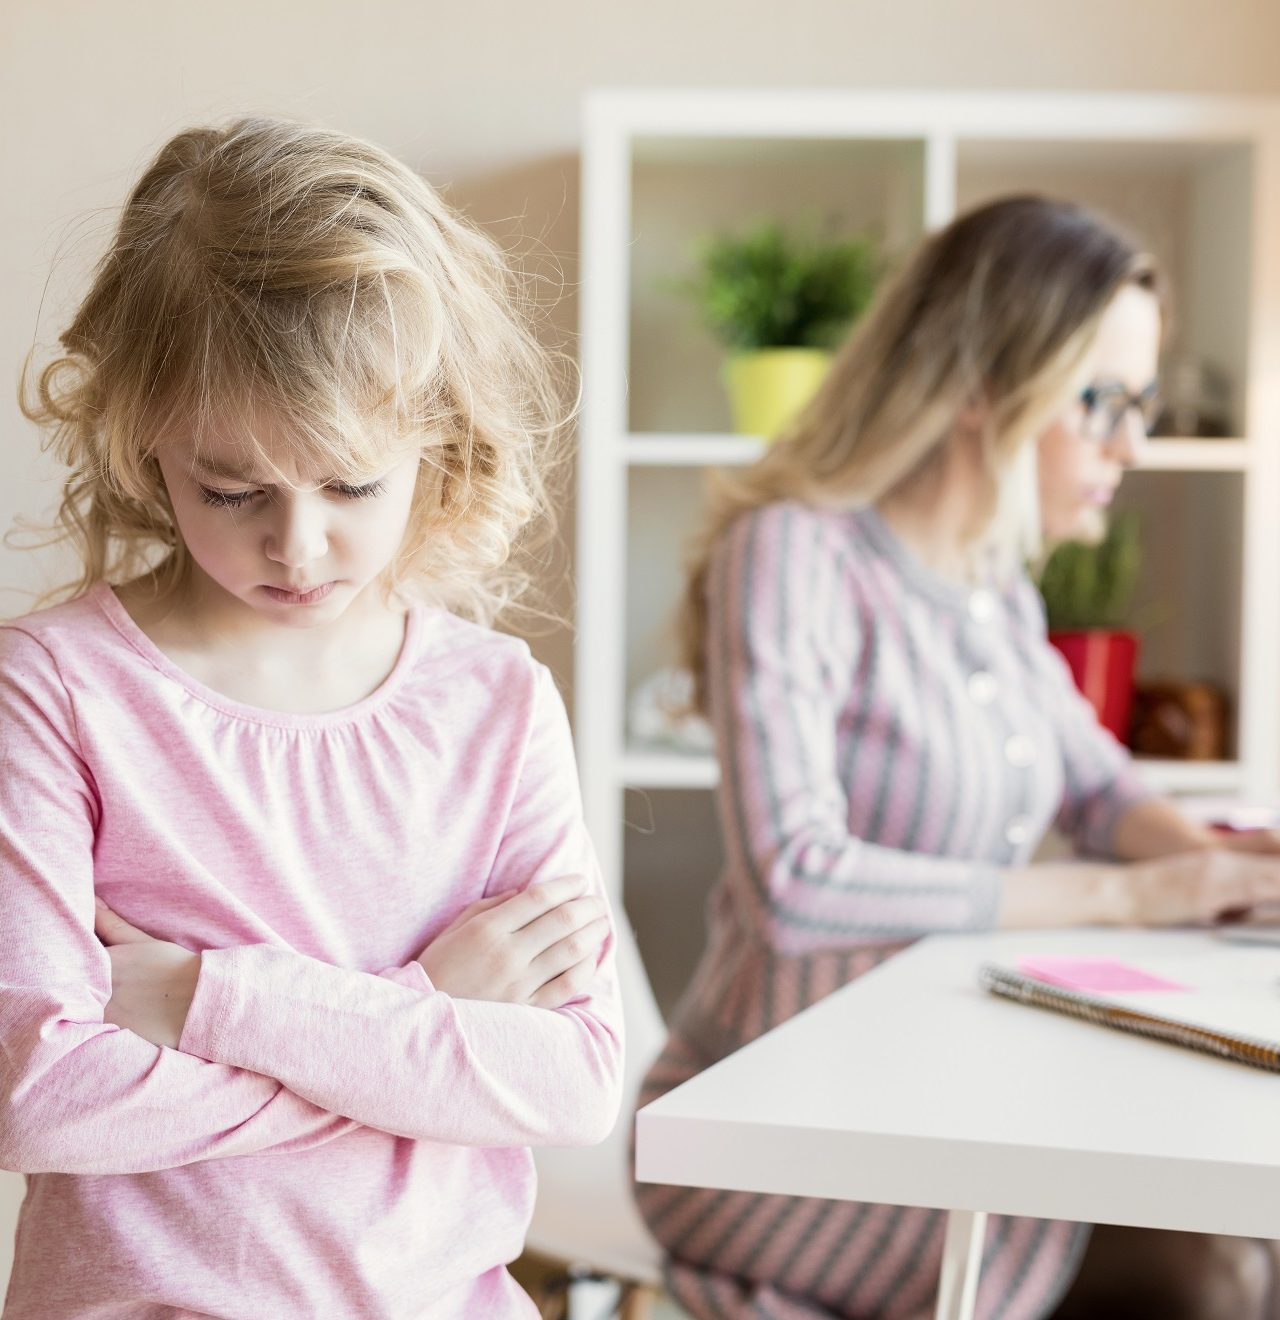 Harmful parenting practices. Sad little girl and angry mom